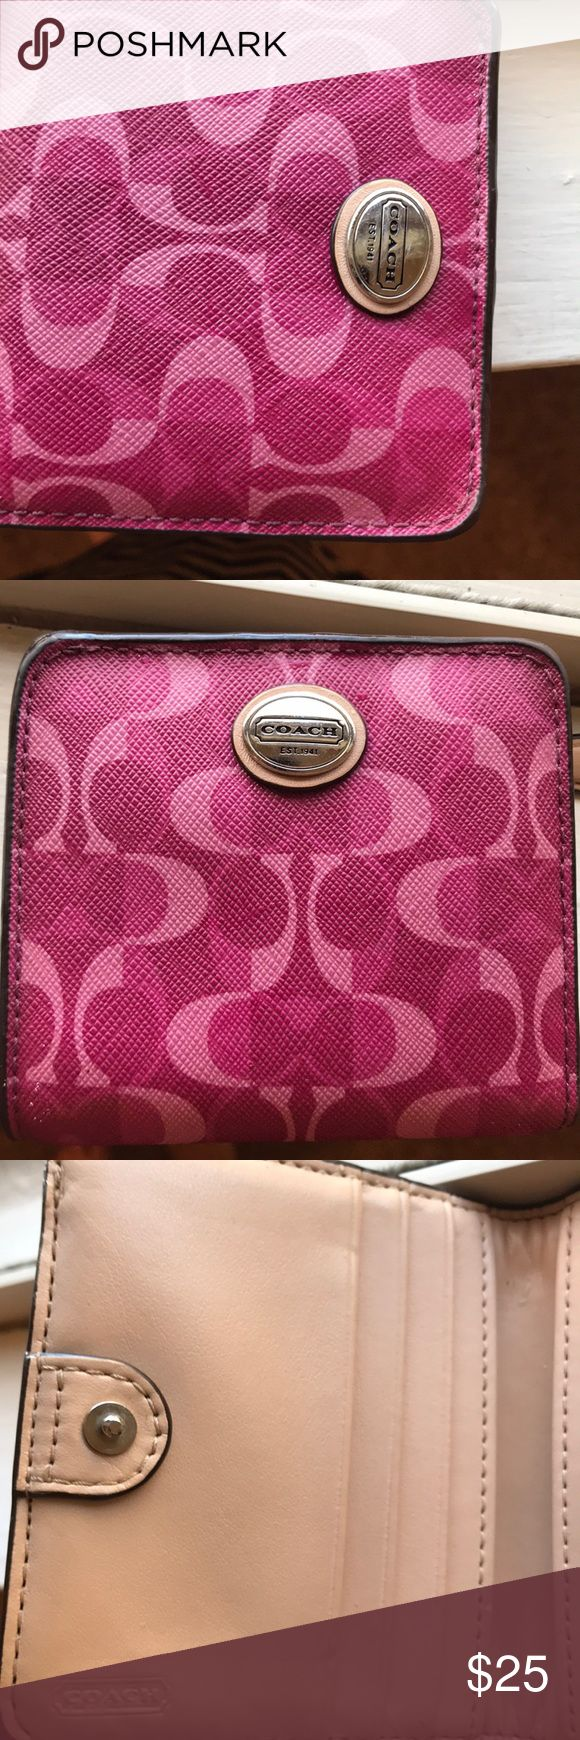 Coach wallet Pink coach wallet never used Coach Bags Wallets